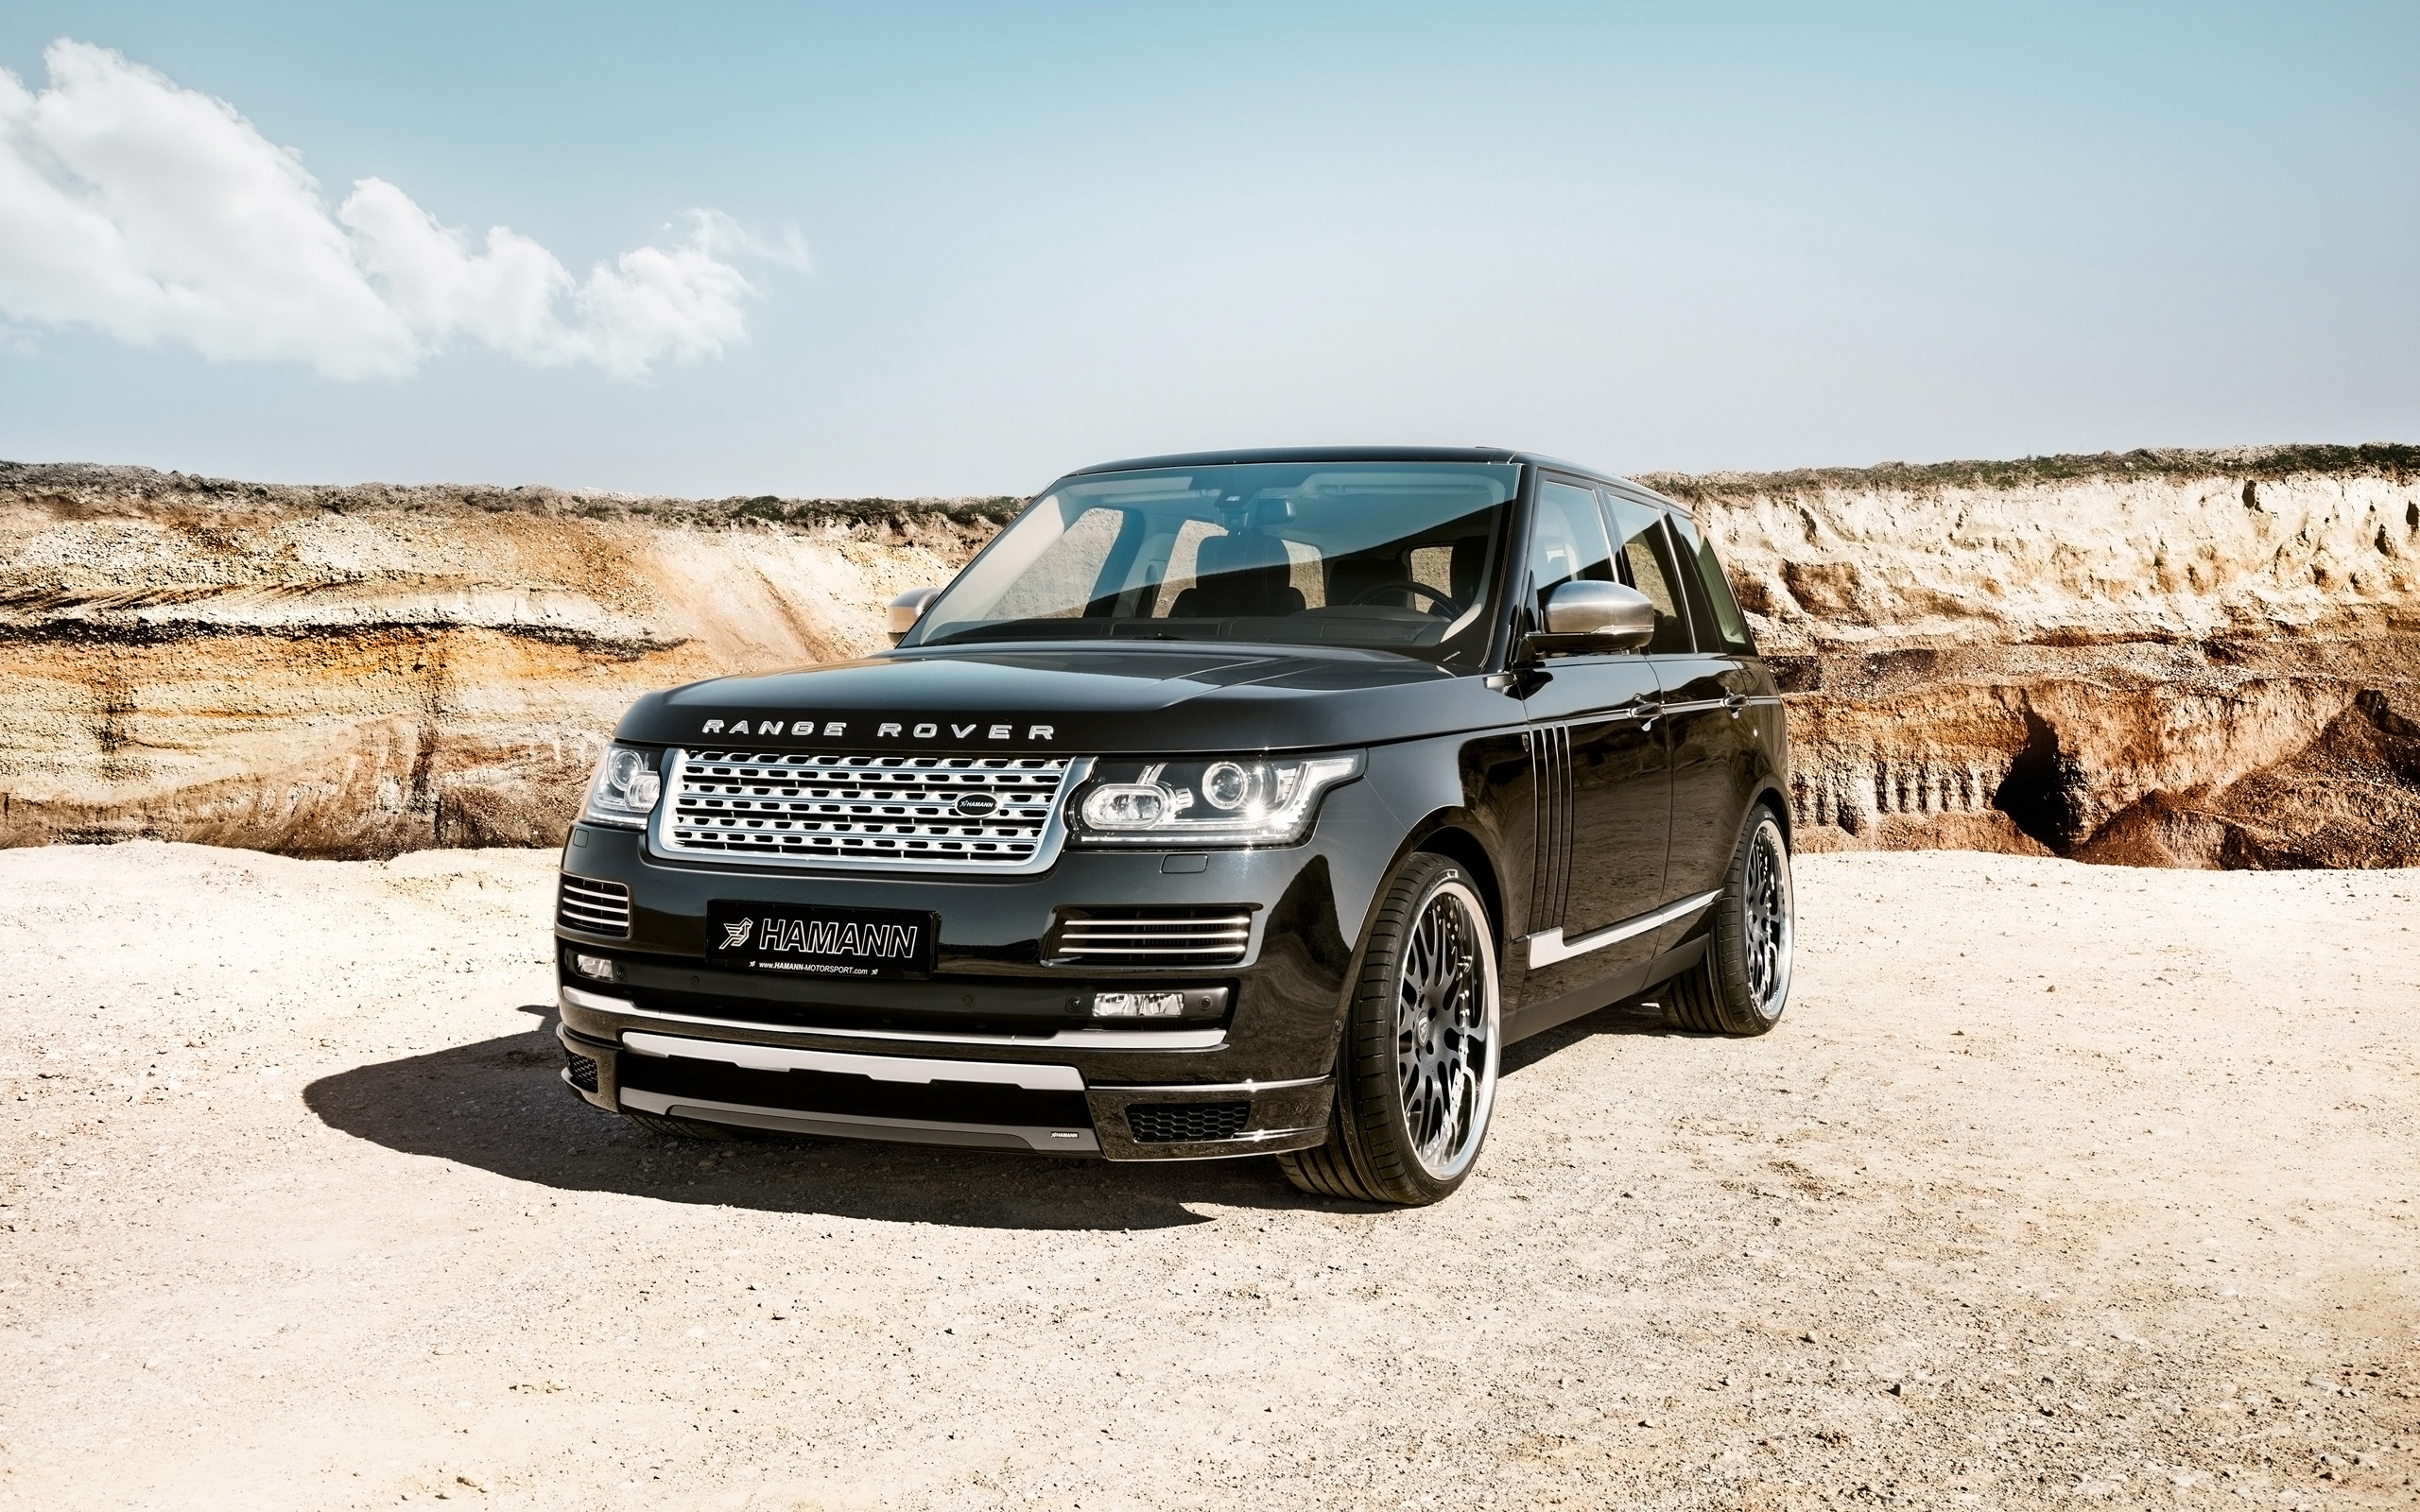 2014 Hamann Range Rover Vogue Wallpaper | HD Car ...